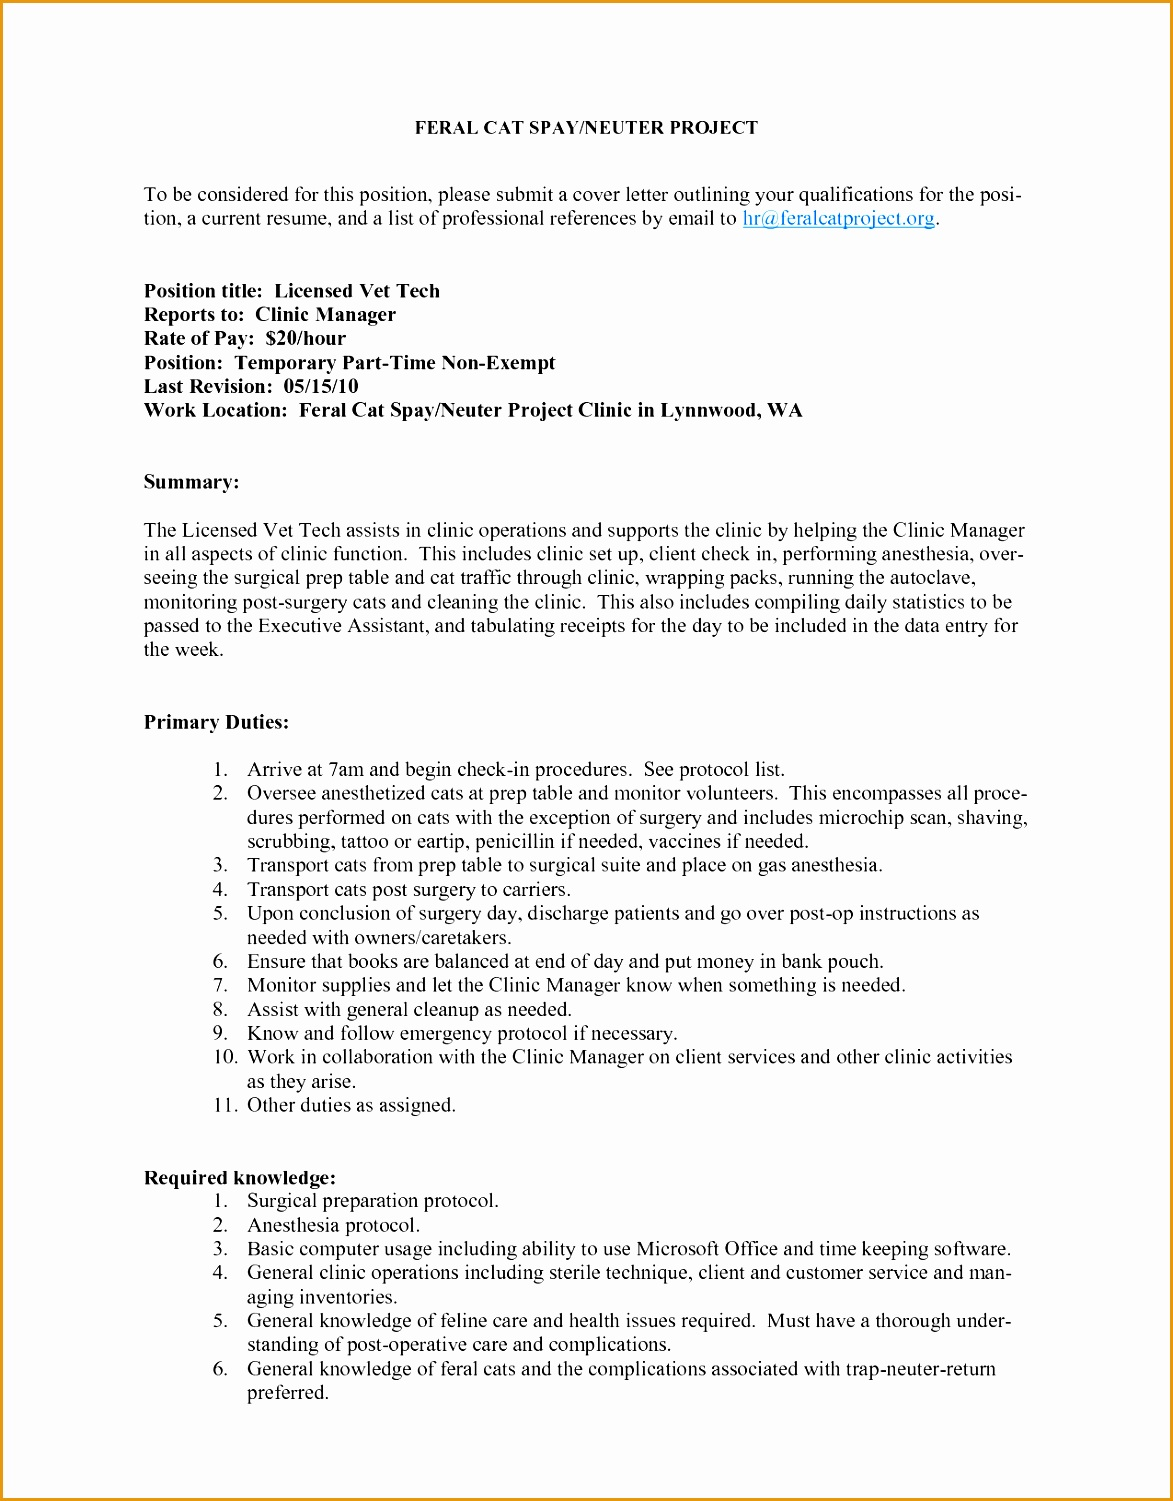 Salary Requirement In Cover Letter Sample Cover Letter Sample 2017 Sample Cover Letter With Salary Requirement